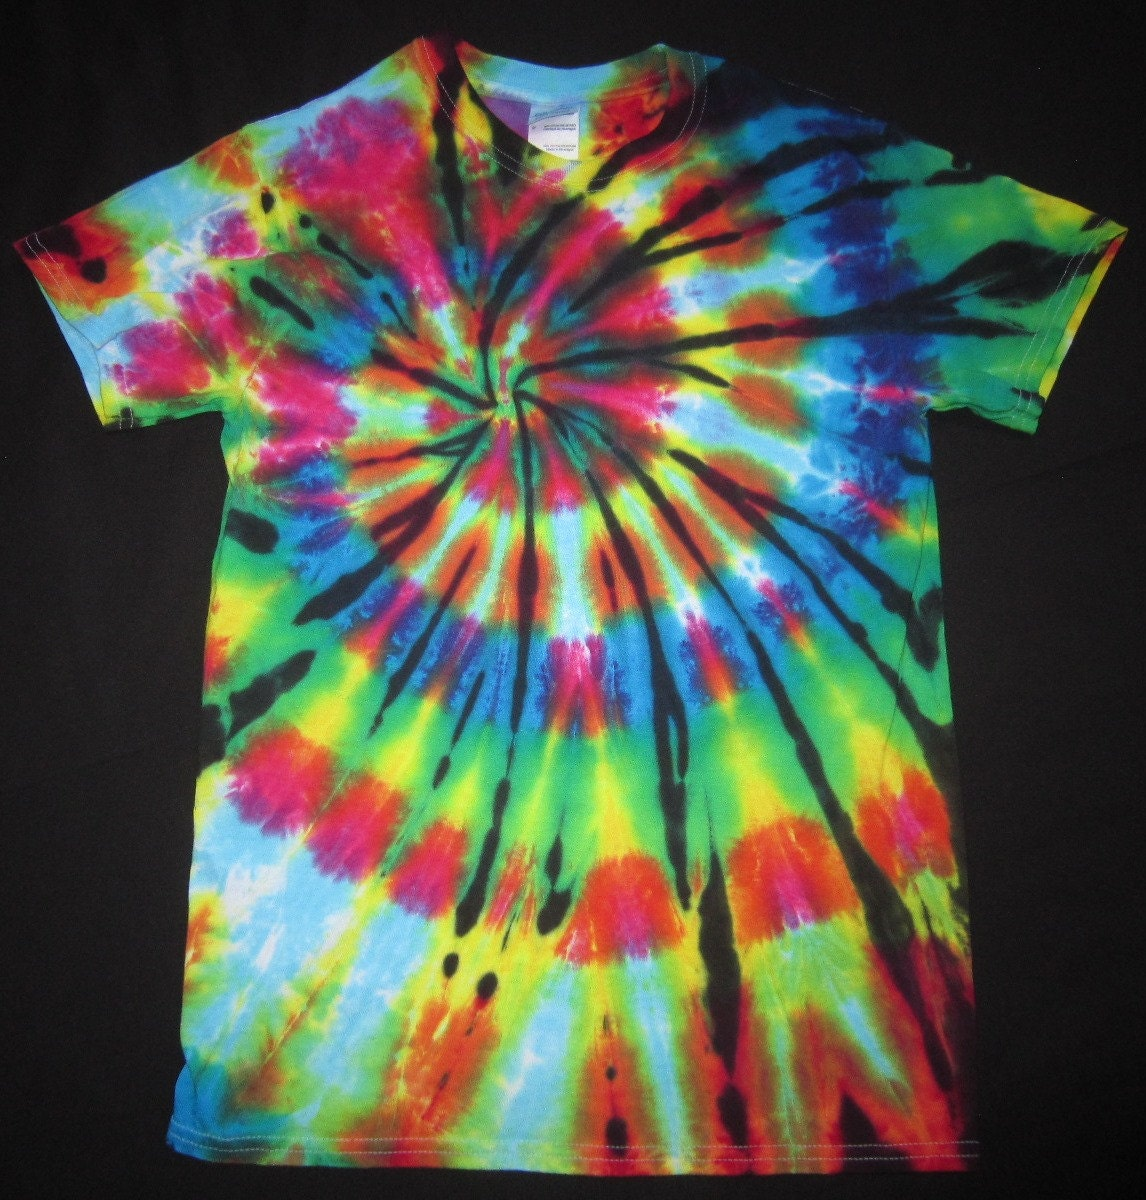 s03 psychedelic spiral tie dye t shirt fits unisex